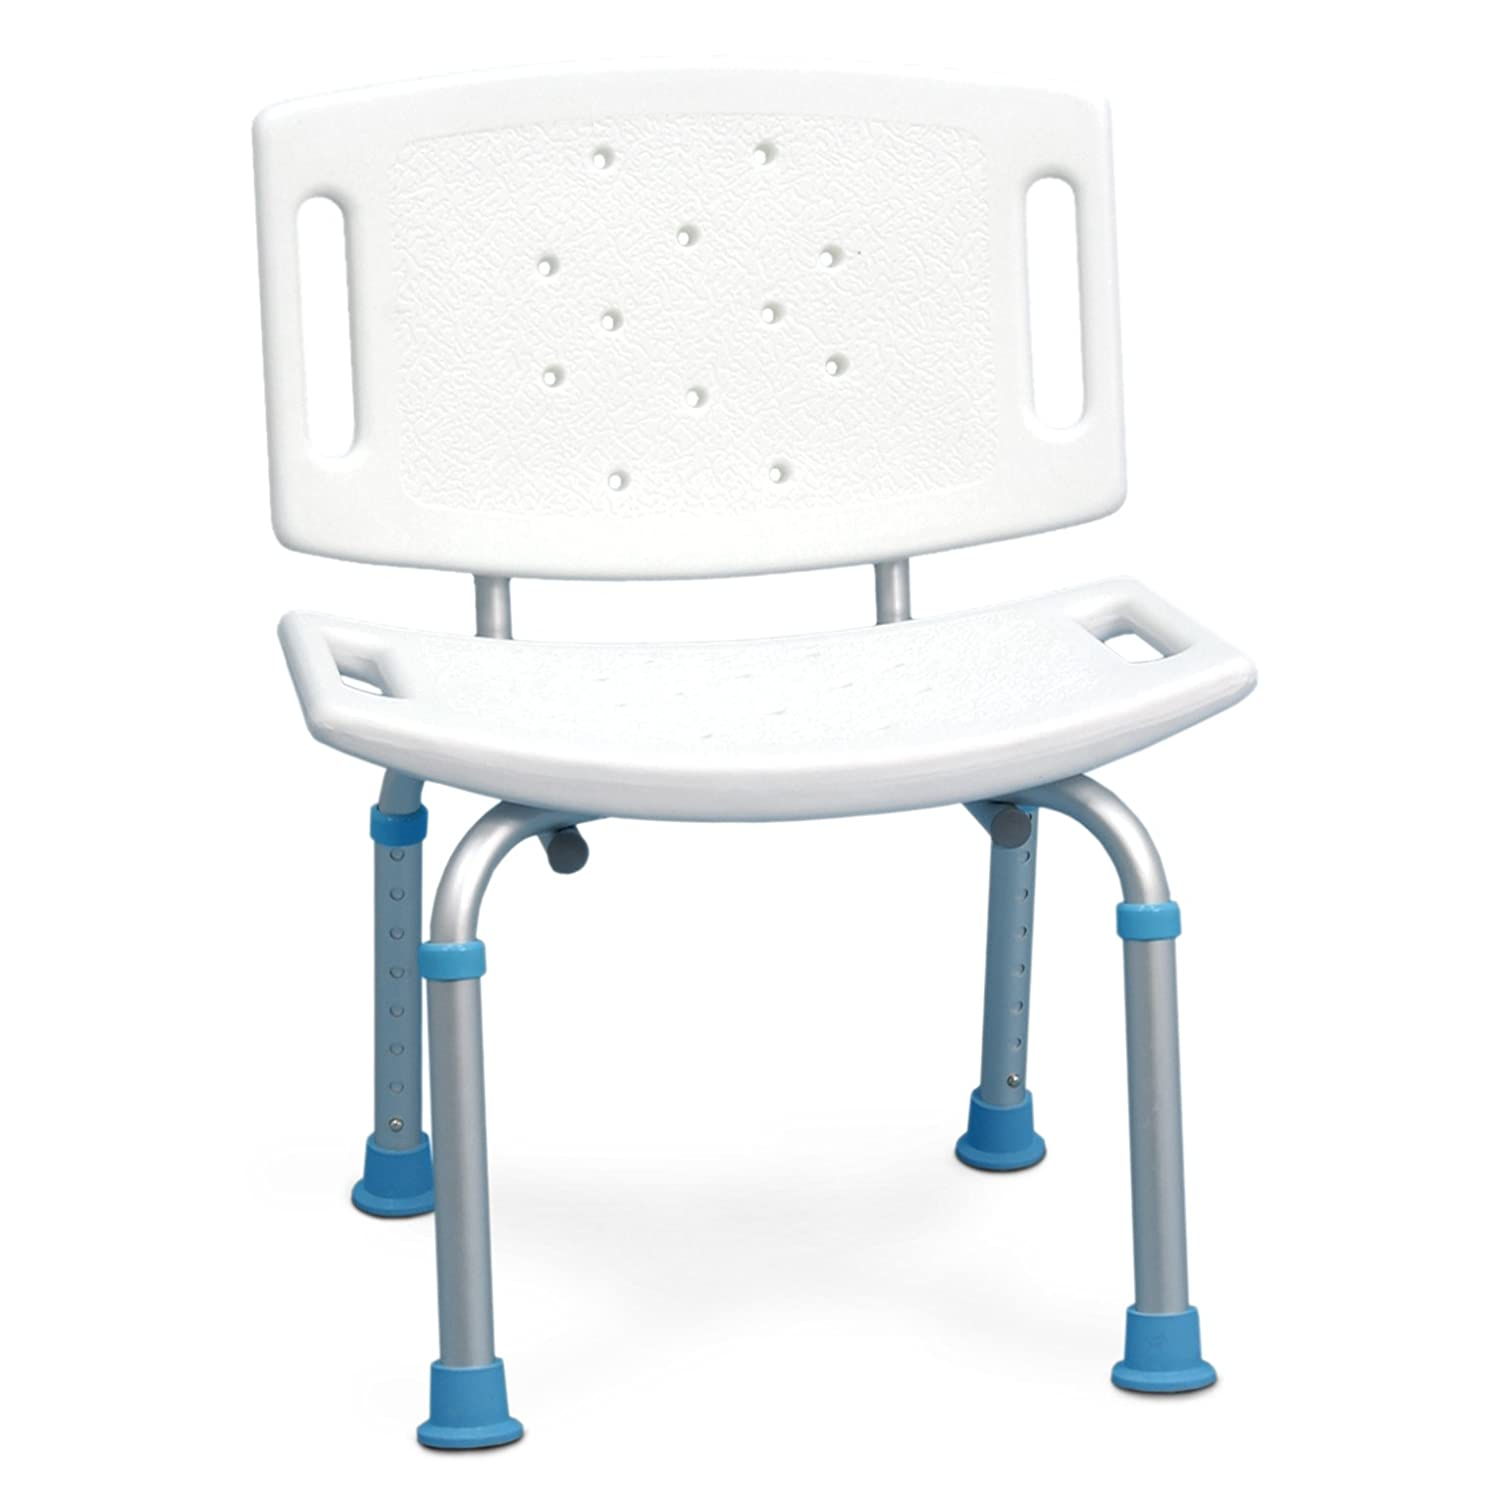 Amazon.com: AquaSense Adjustable Bath and Shower Seat with Non-Slip ...